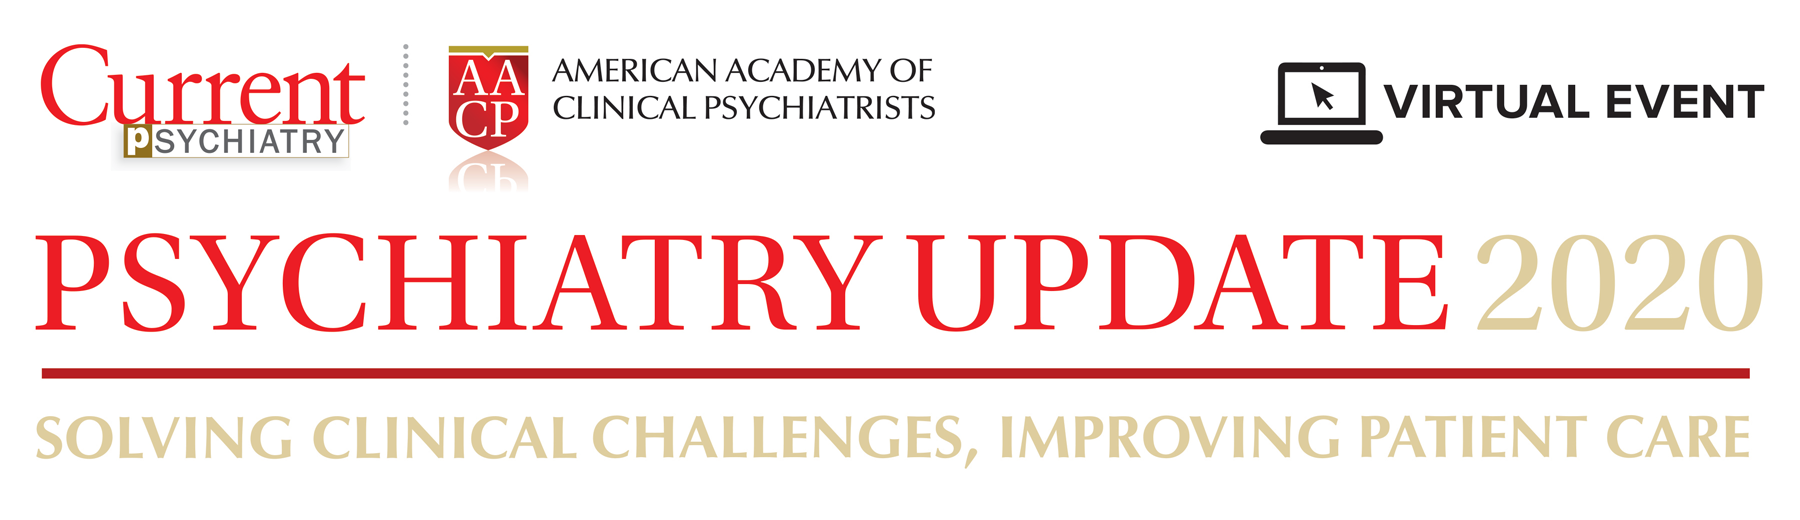 AACP/Current Psychiatry: Psychiatry Update Live Bonus Presentation